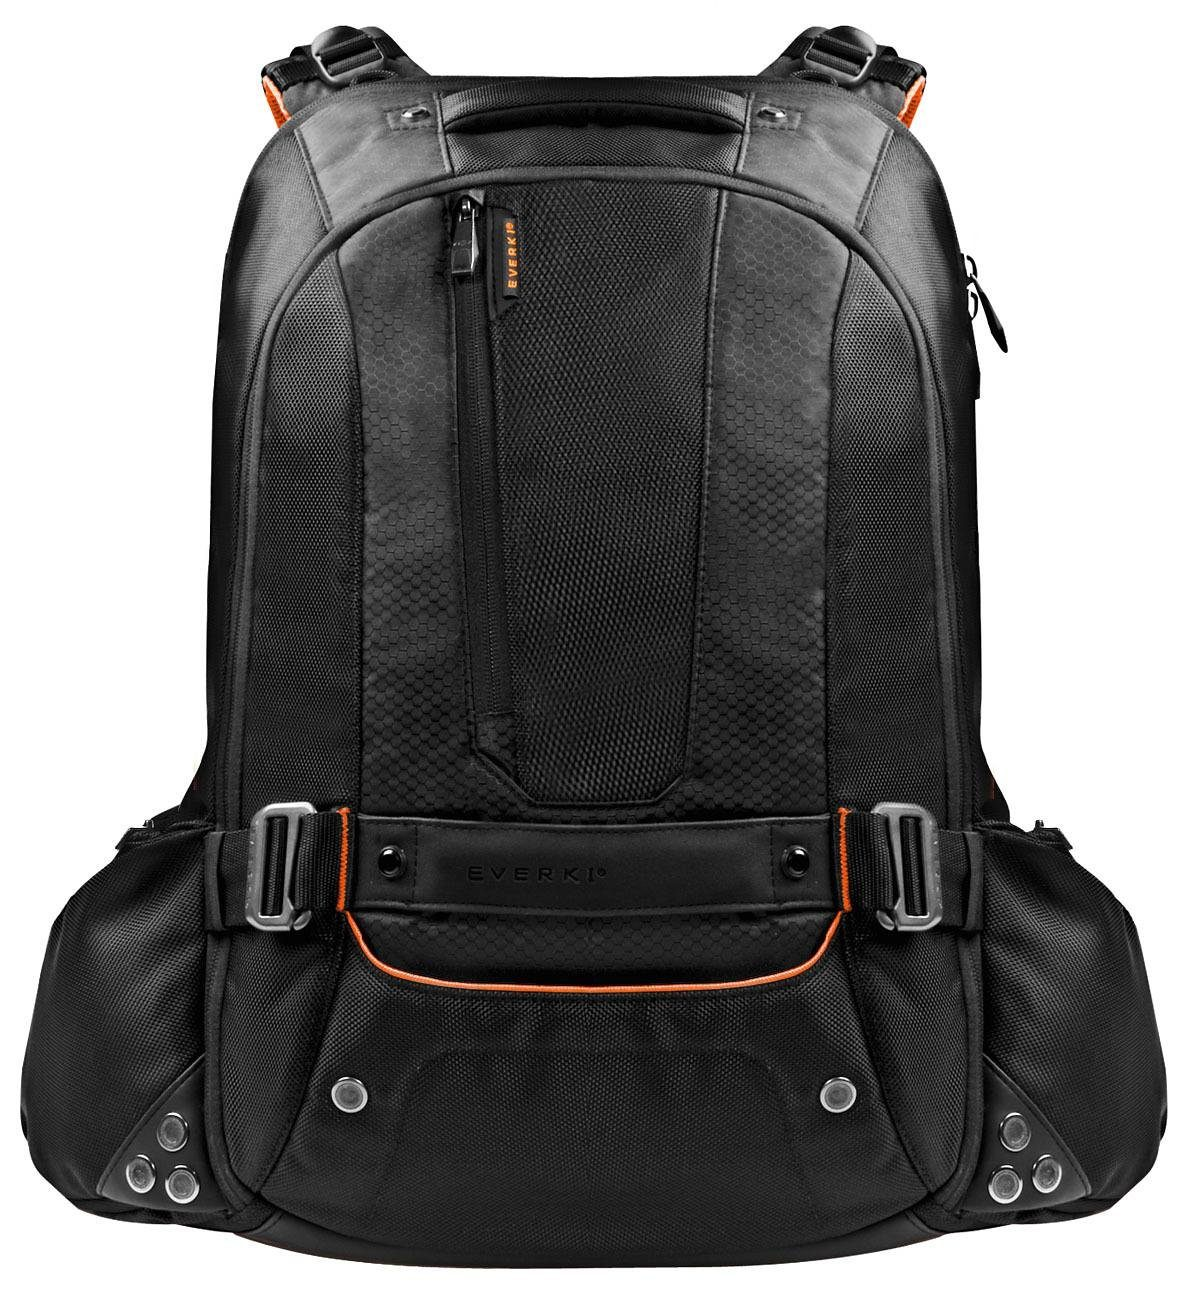 "Everki Laptop-Rucksack »Beacon 18,4""«"